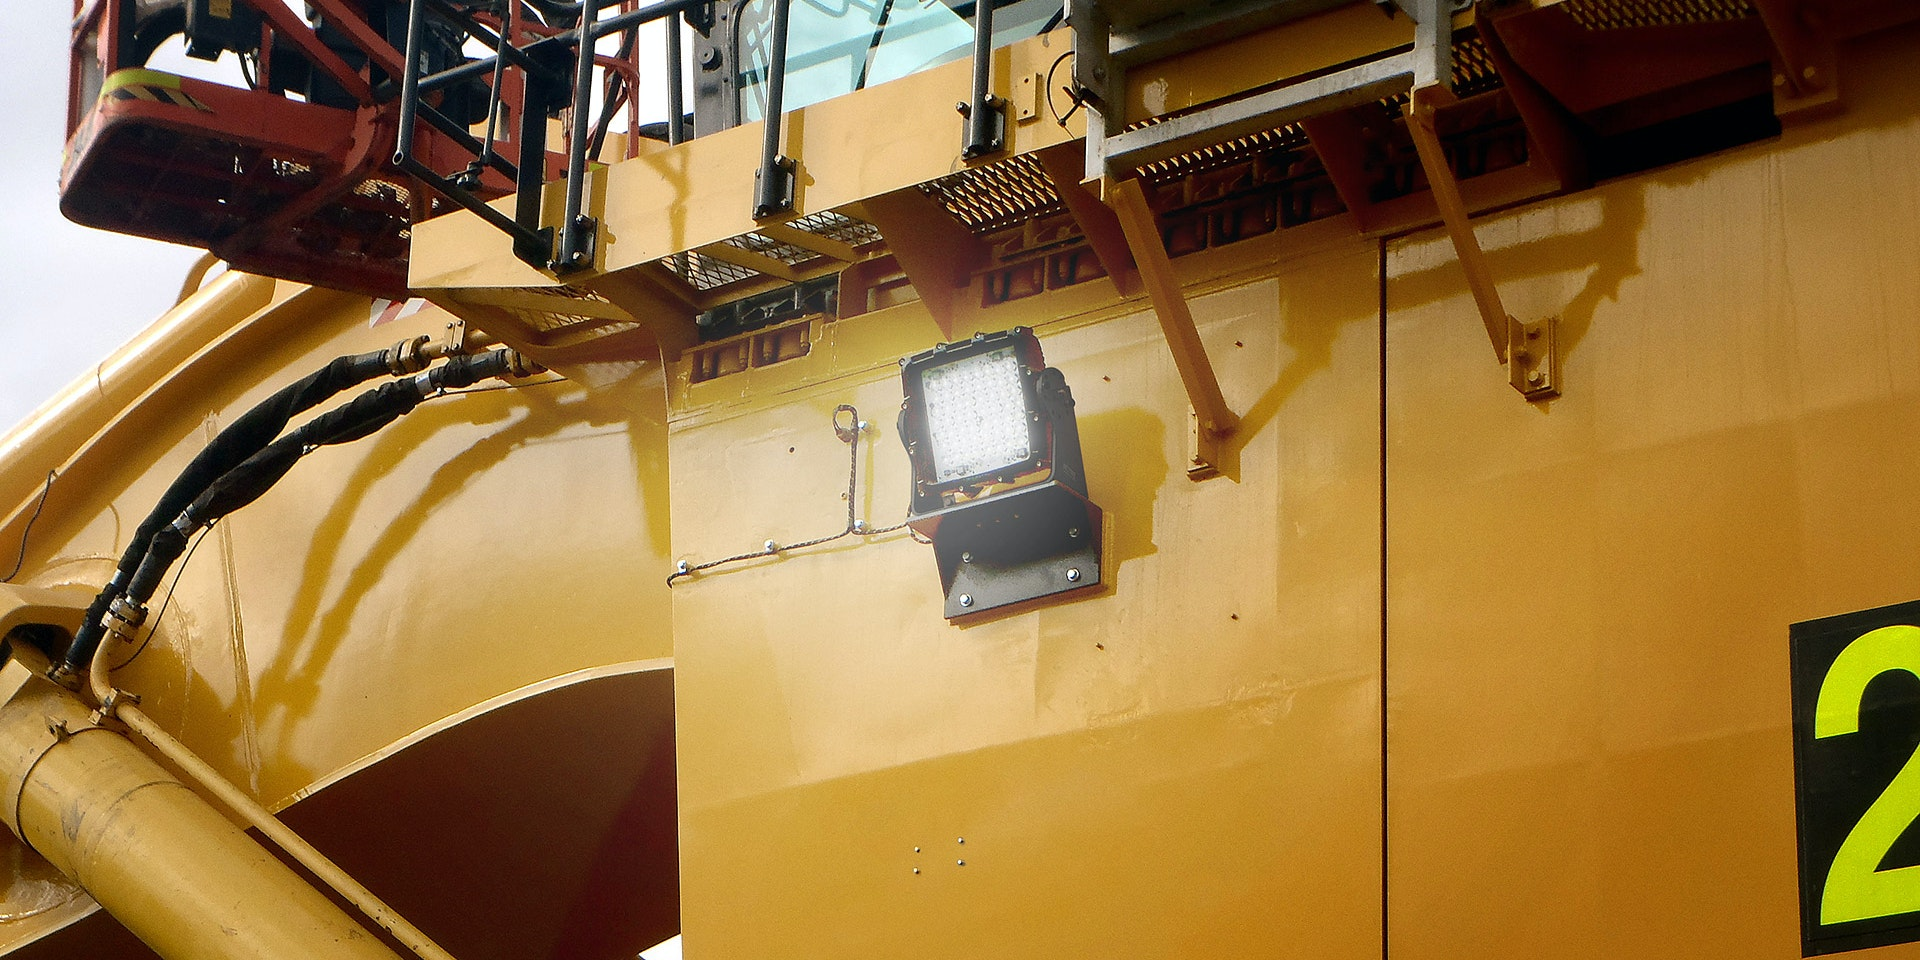 CP56 LED Flood Light in application, installed on a large hydraulic excavator komatsu on an industrial / mine site